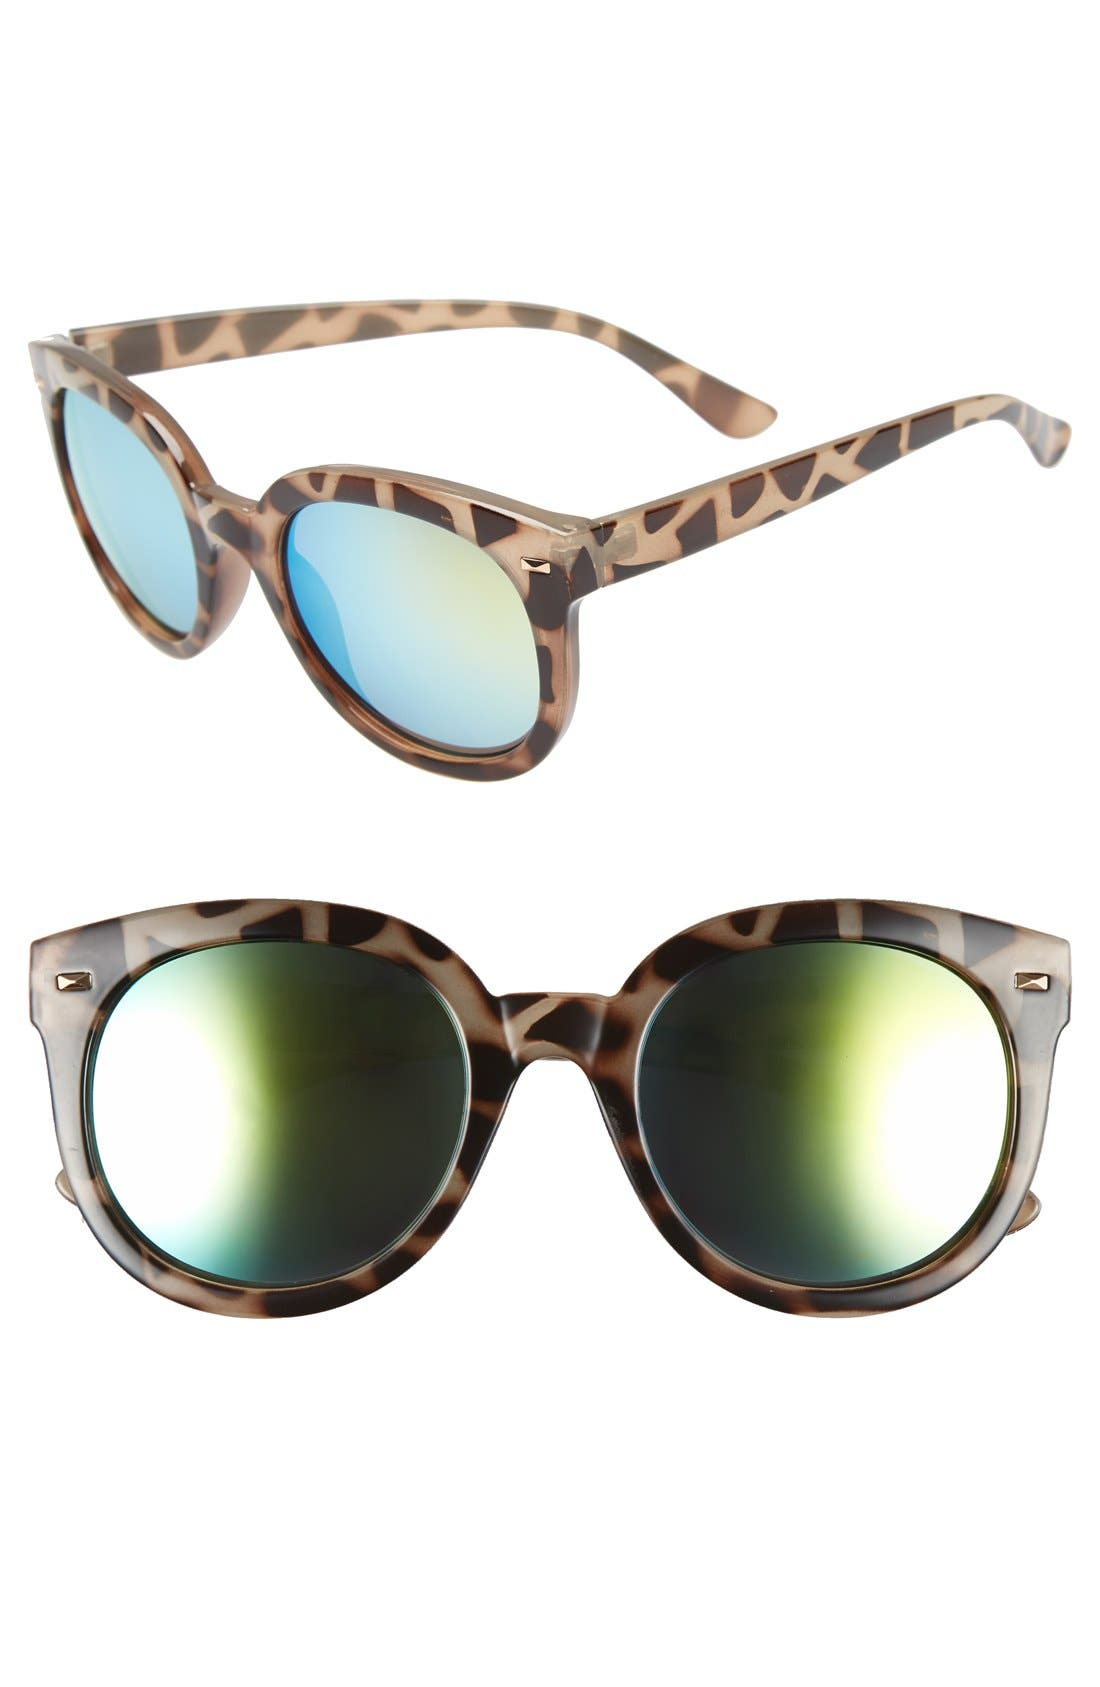 52mm Oversize Mirrored Sunglasses,                             Main thumbnail 1, color,